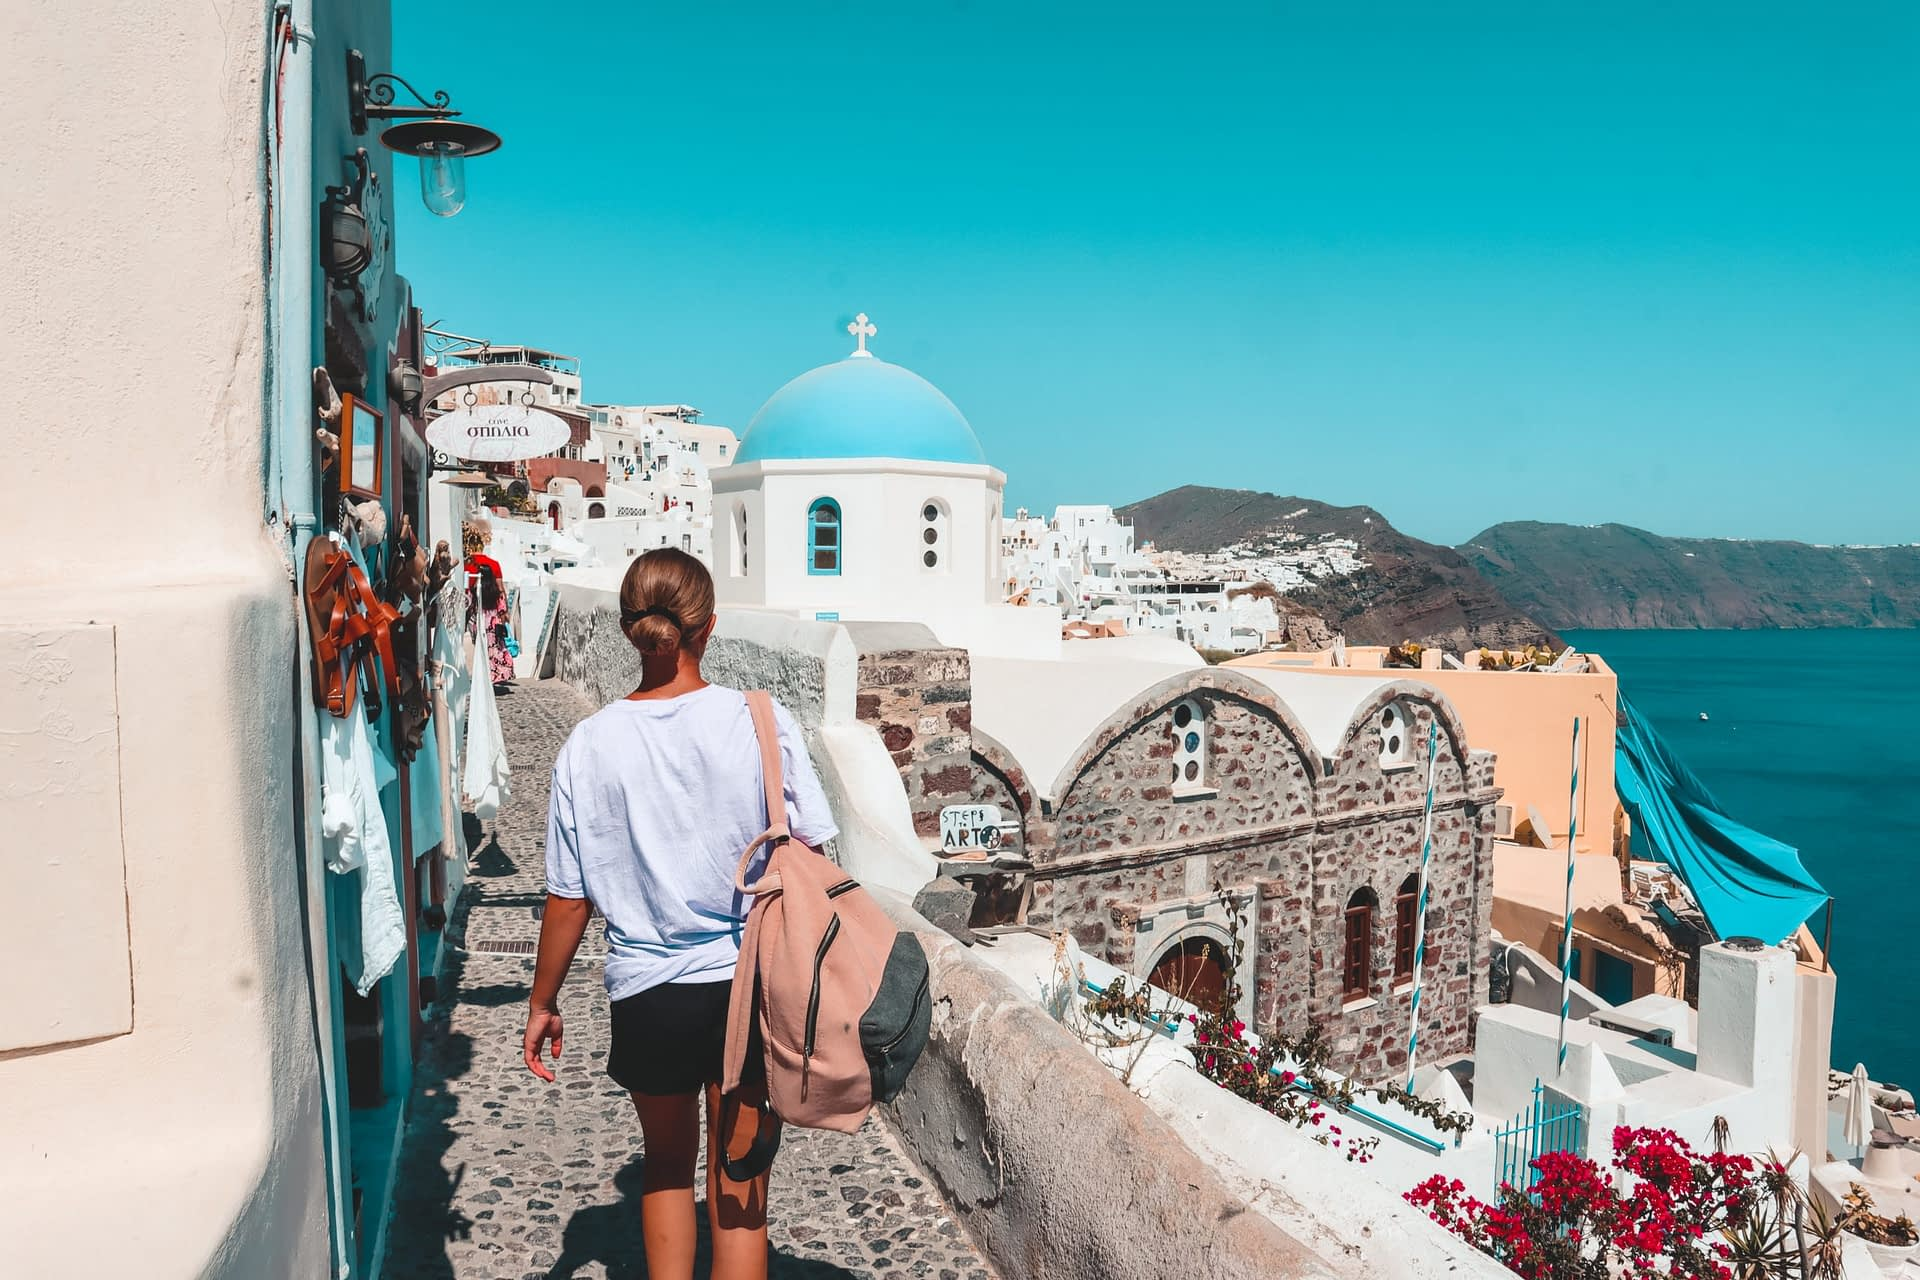 A woman strolling around the streets of Oia. Things to do in Oia